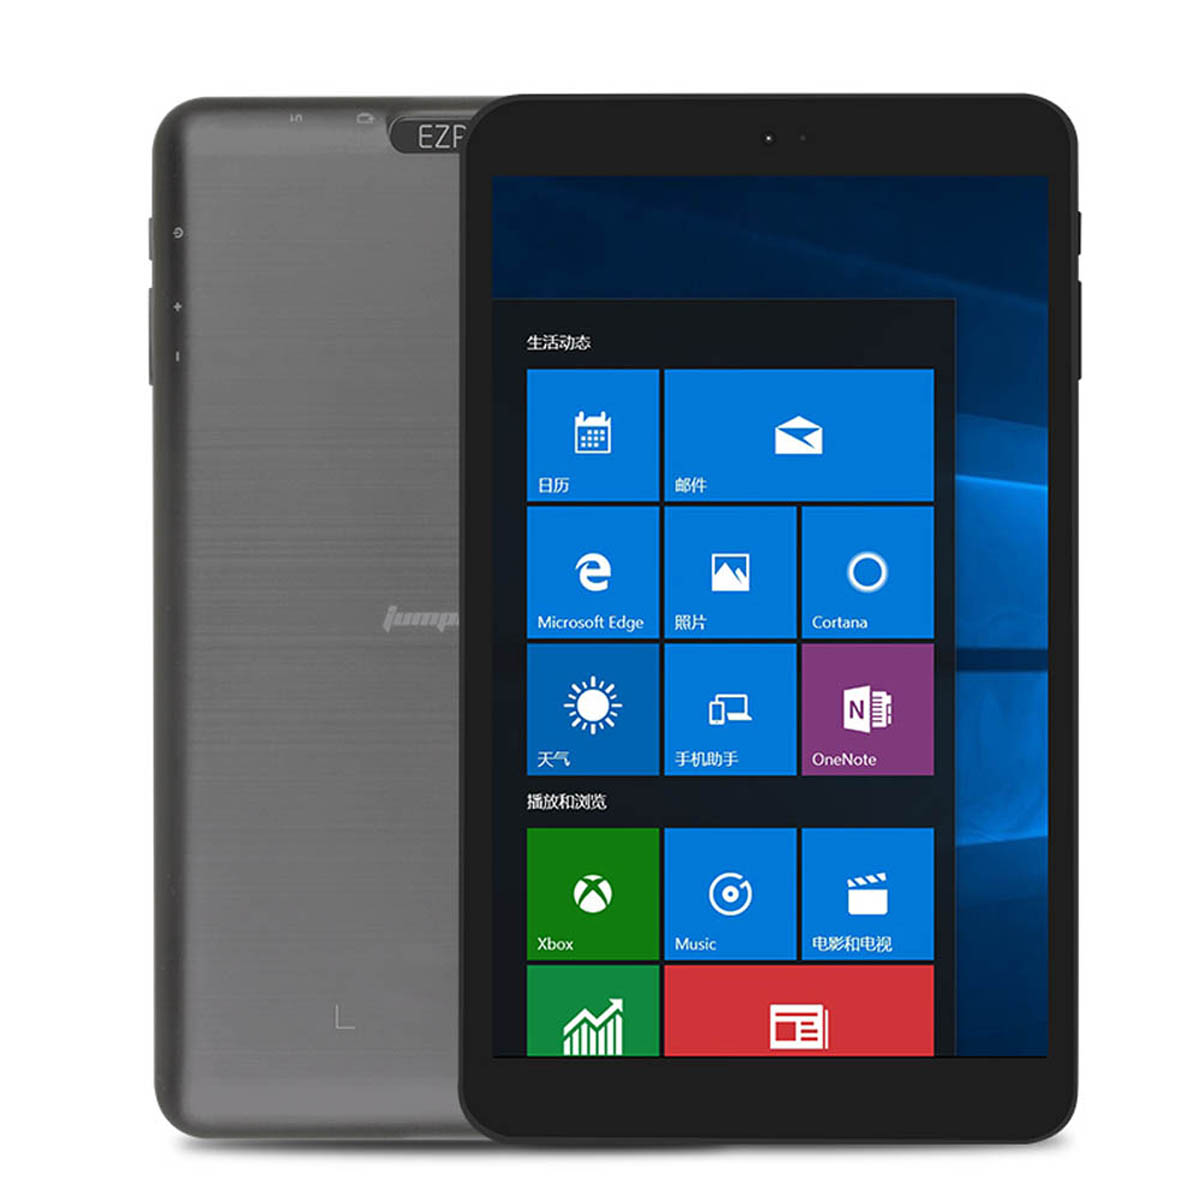 Caixa Original Jumper Ezpad Mini 5 Intel Cereja Trilha Z8350 2GB RAM GB Windows 10 32 8 Polegada Tablet